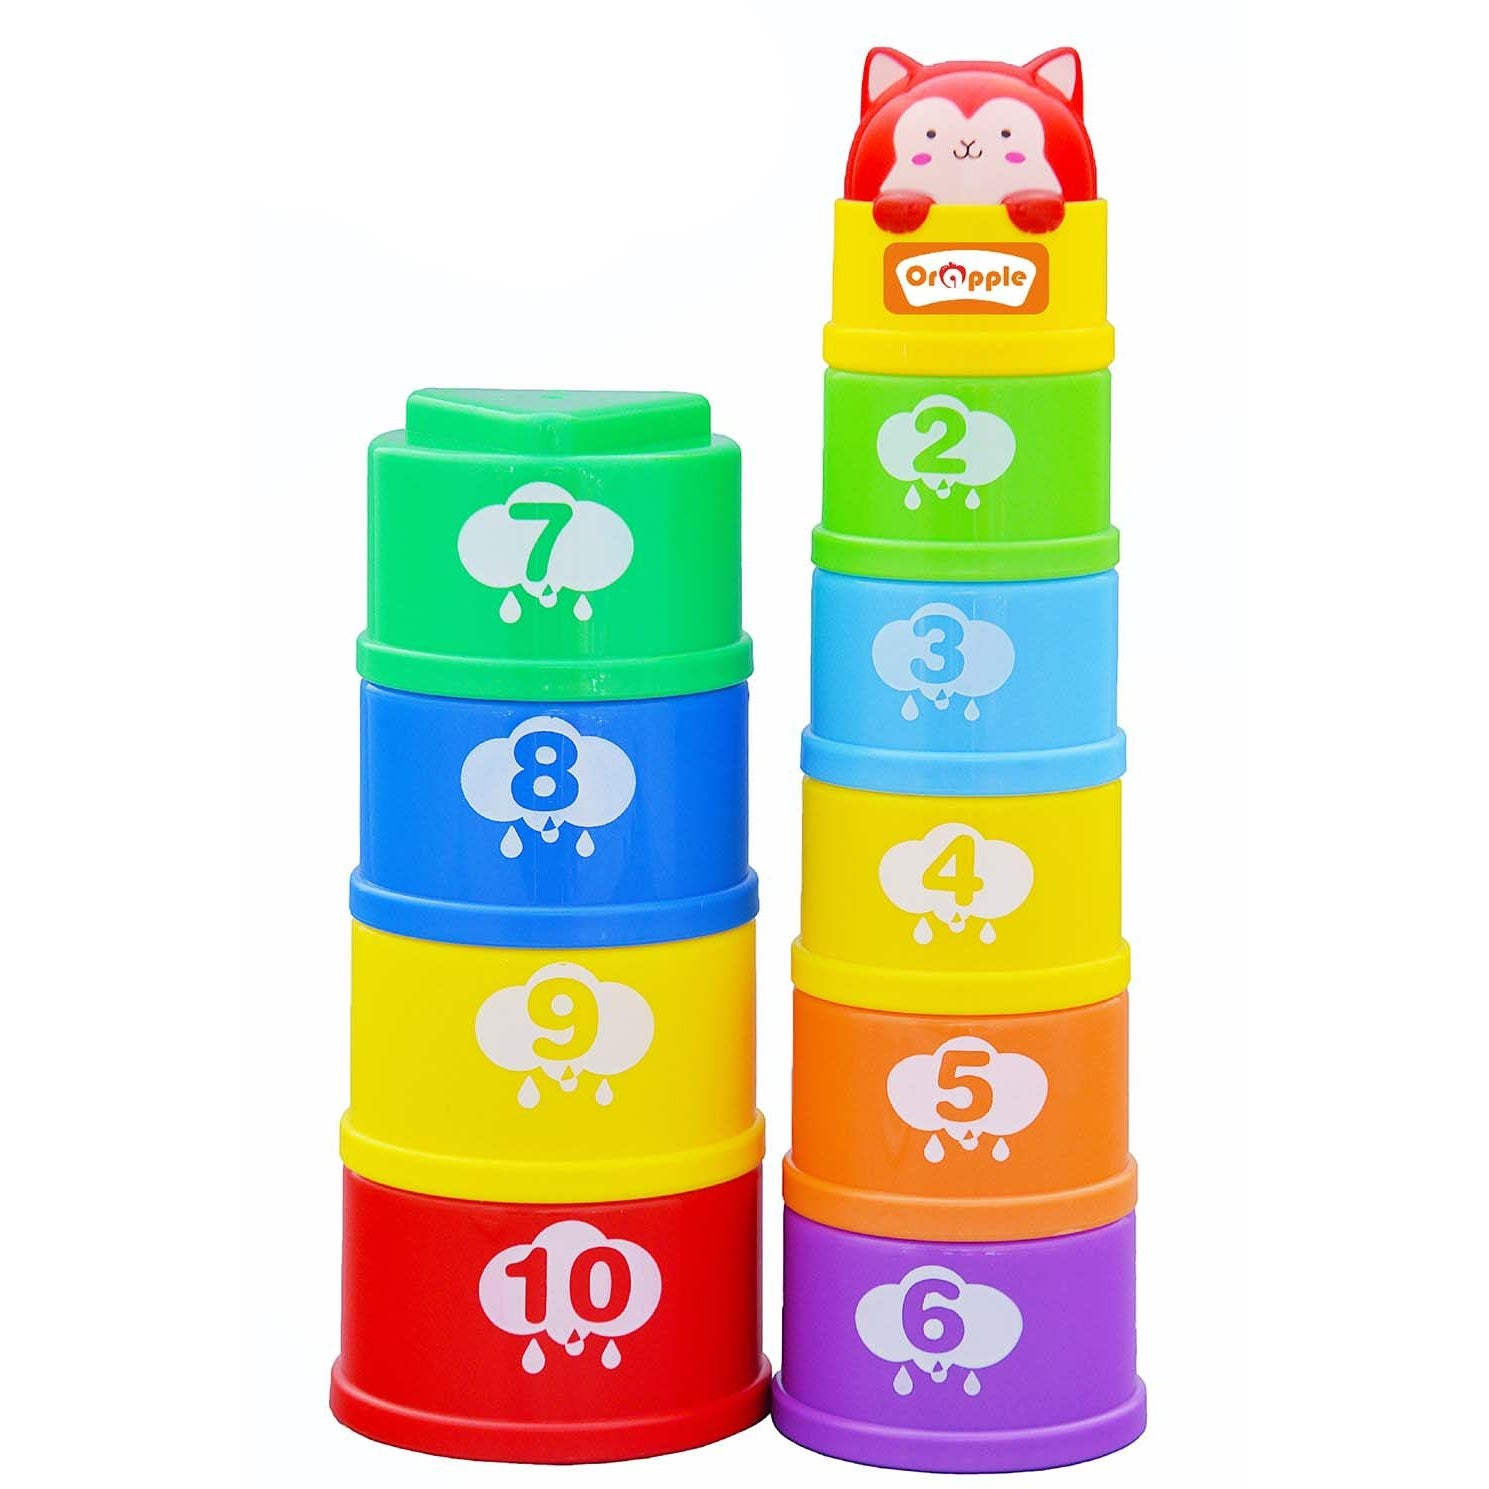 Orapple Toys Stack It Learning Cups with Music for Kids